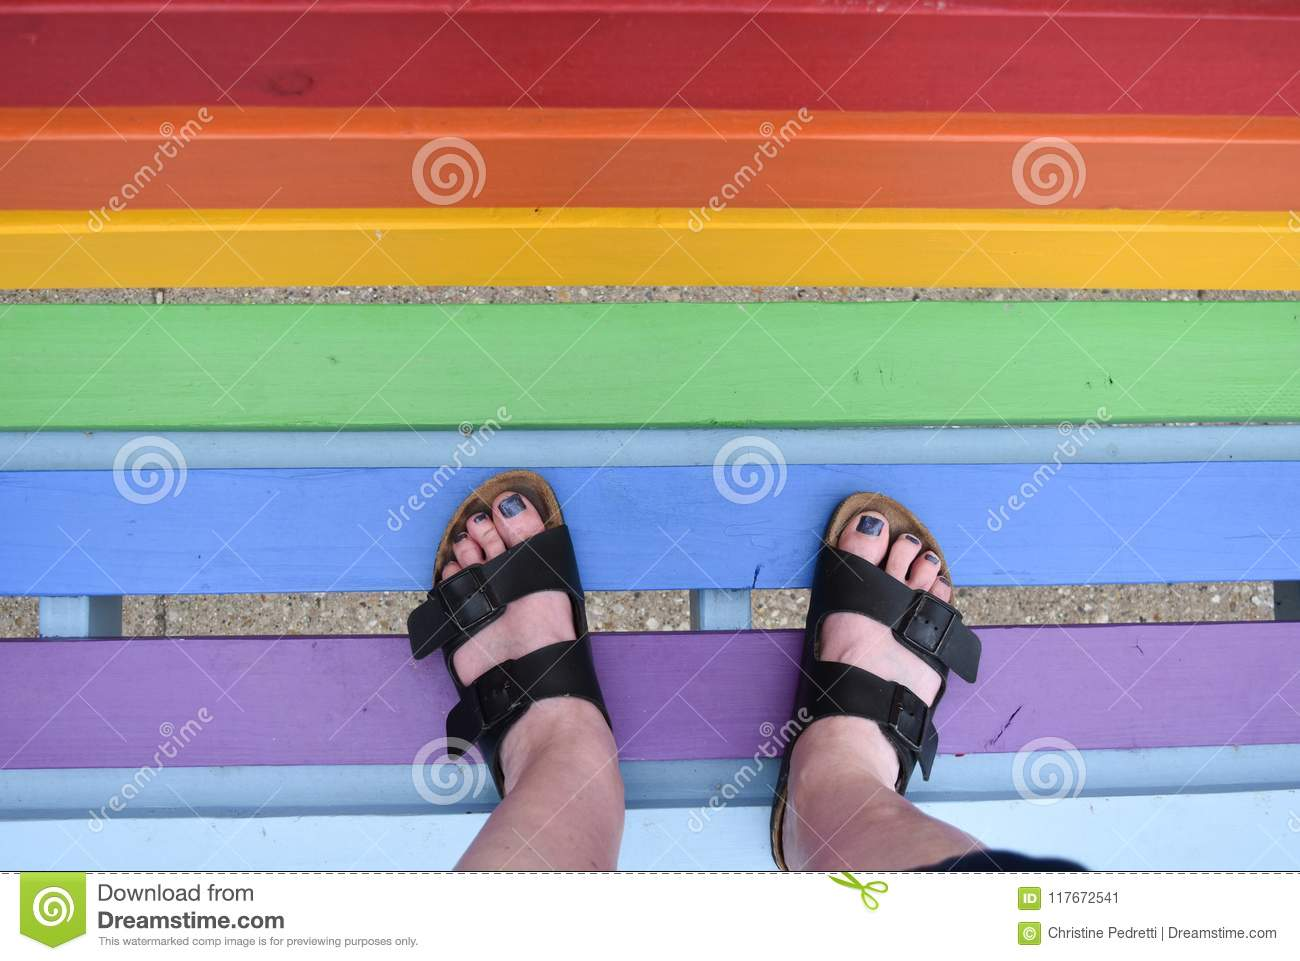 Woman standing on a bench painted in rainbow colors